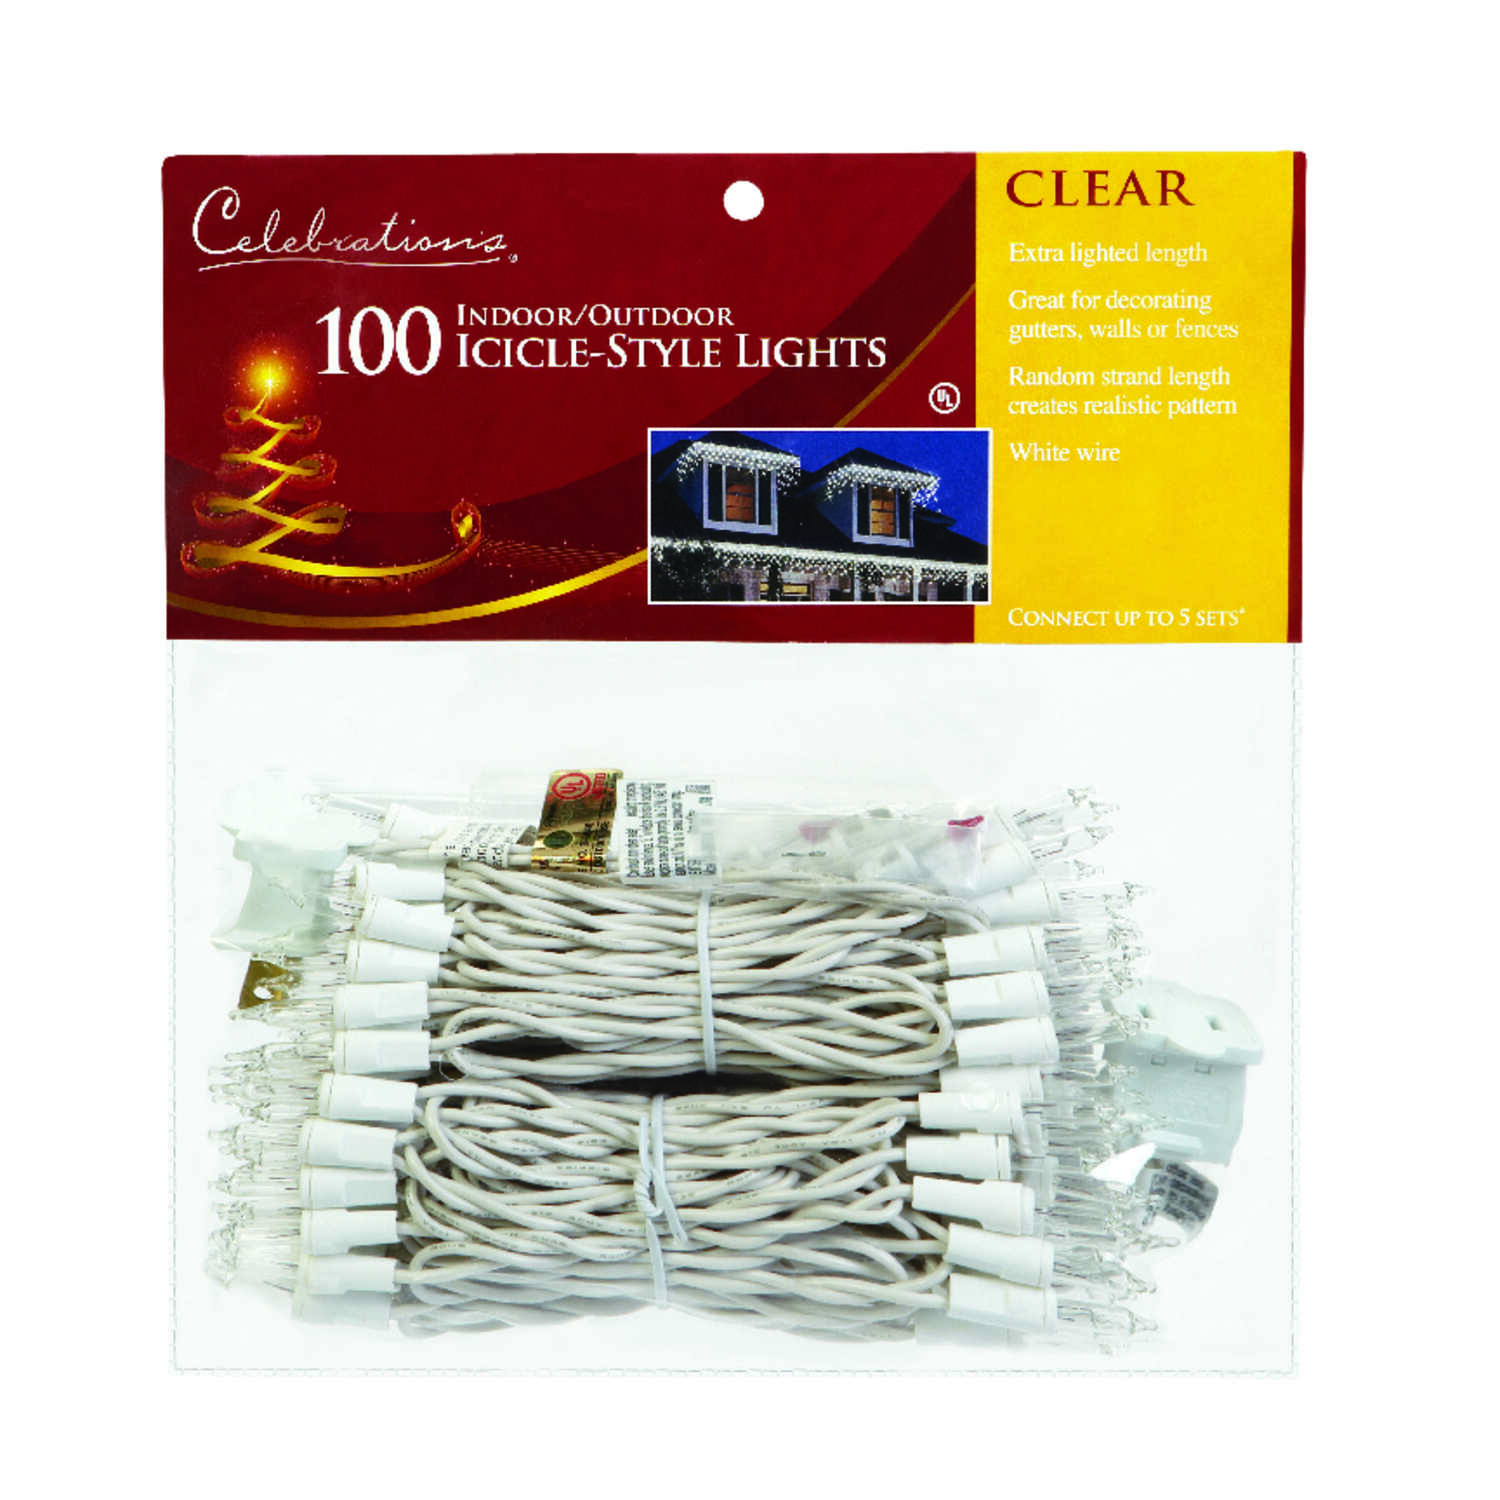 Celebrations  Incandescent  Icicle  Light Set  Clear  8.5  100 lights